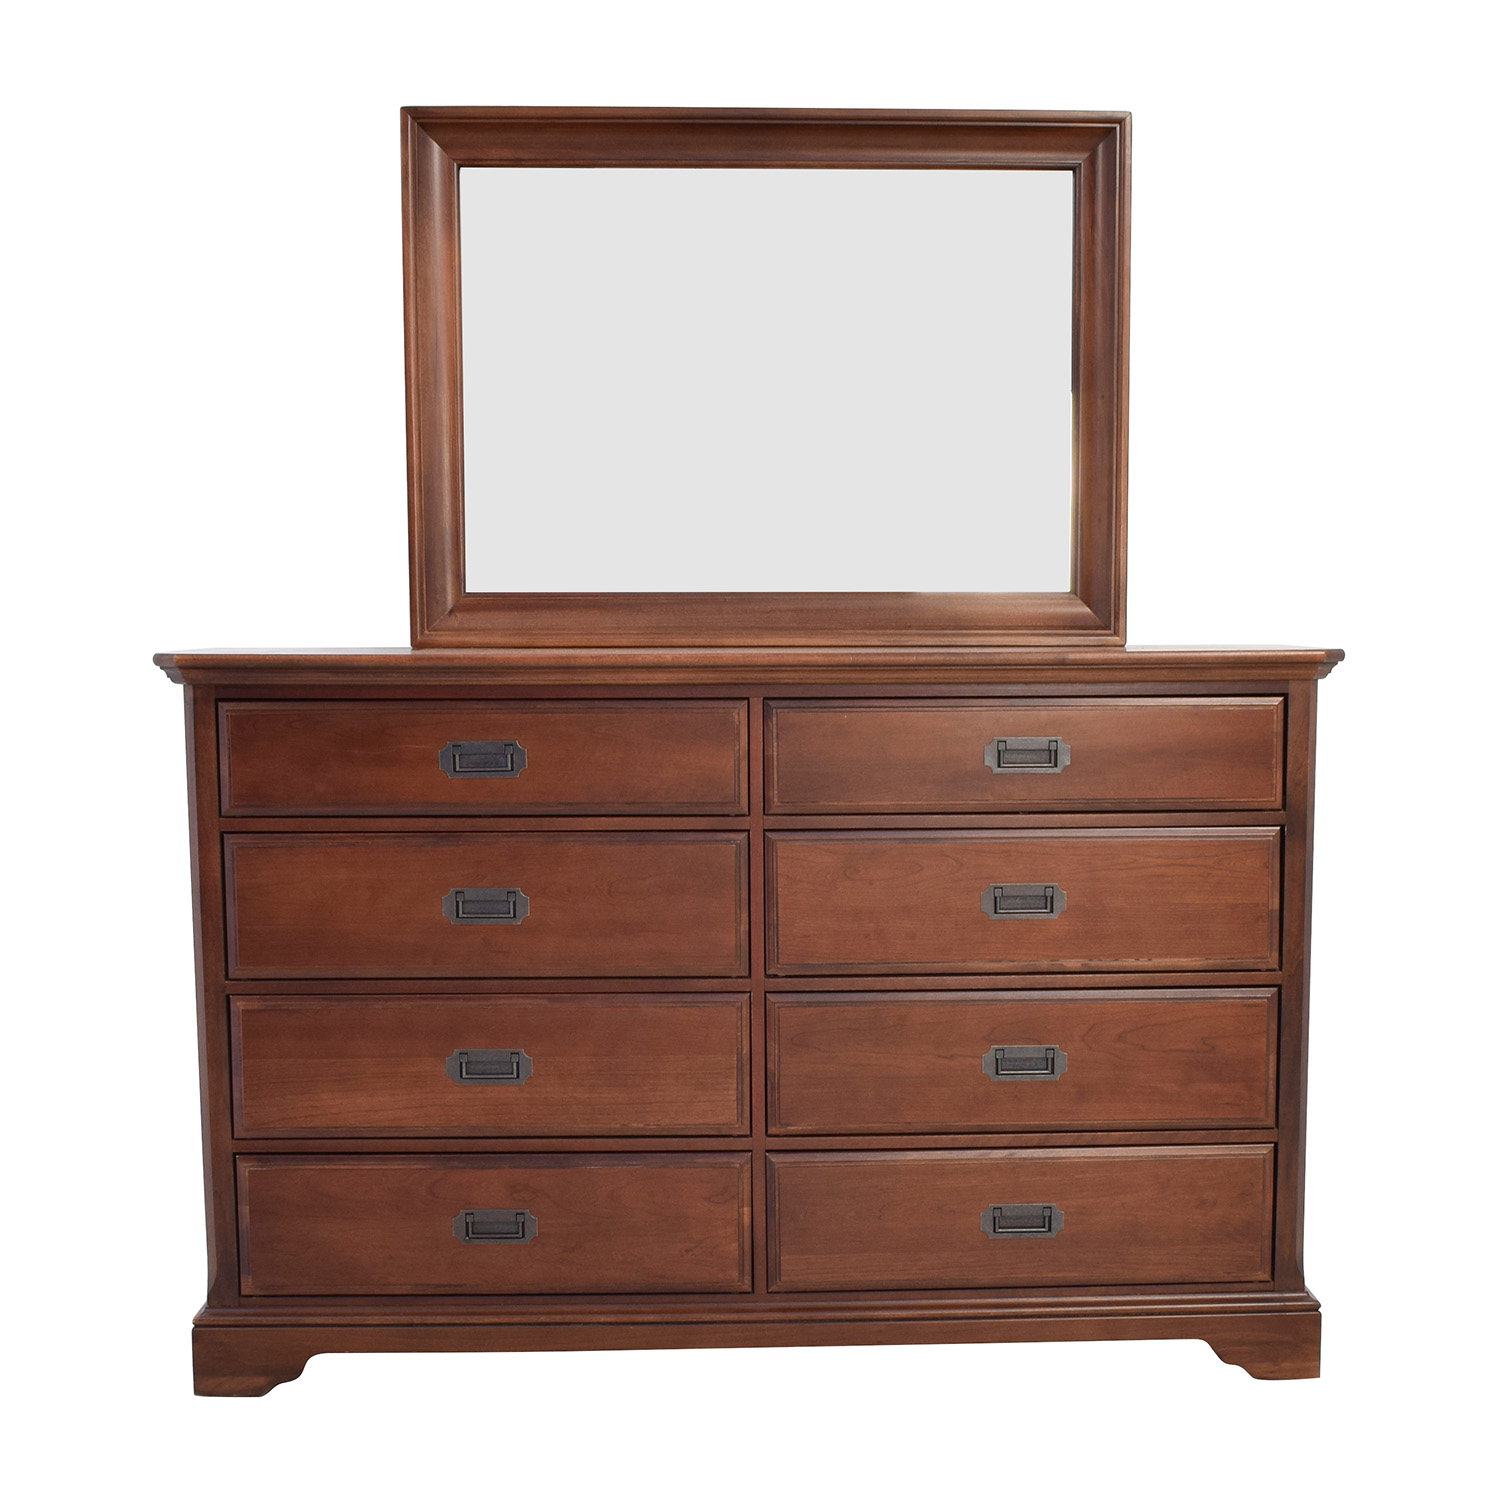 Vaughan Bassett Hardwood Dresser with Mirror discount